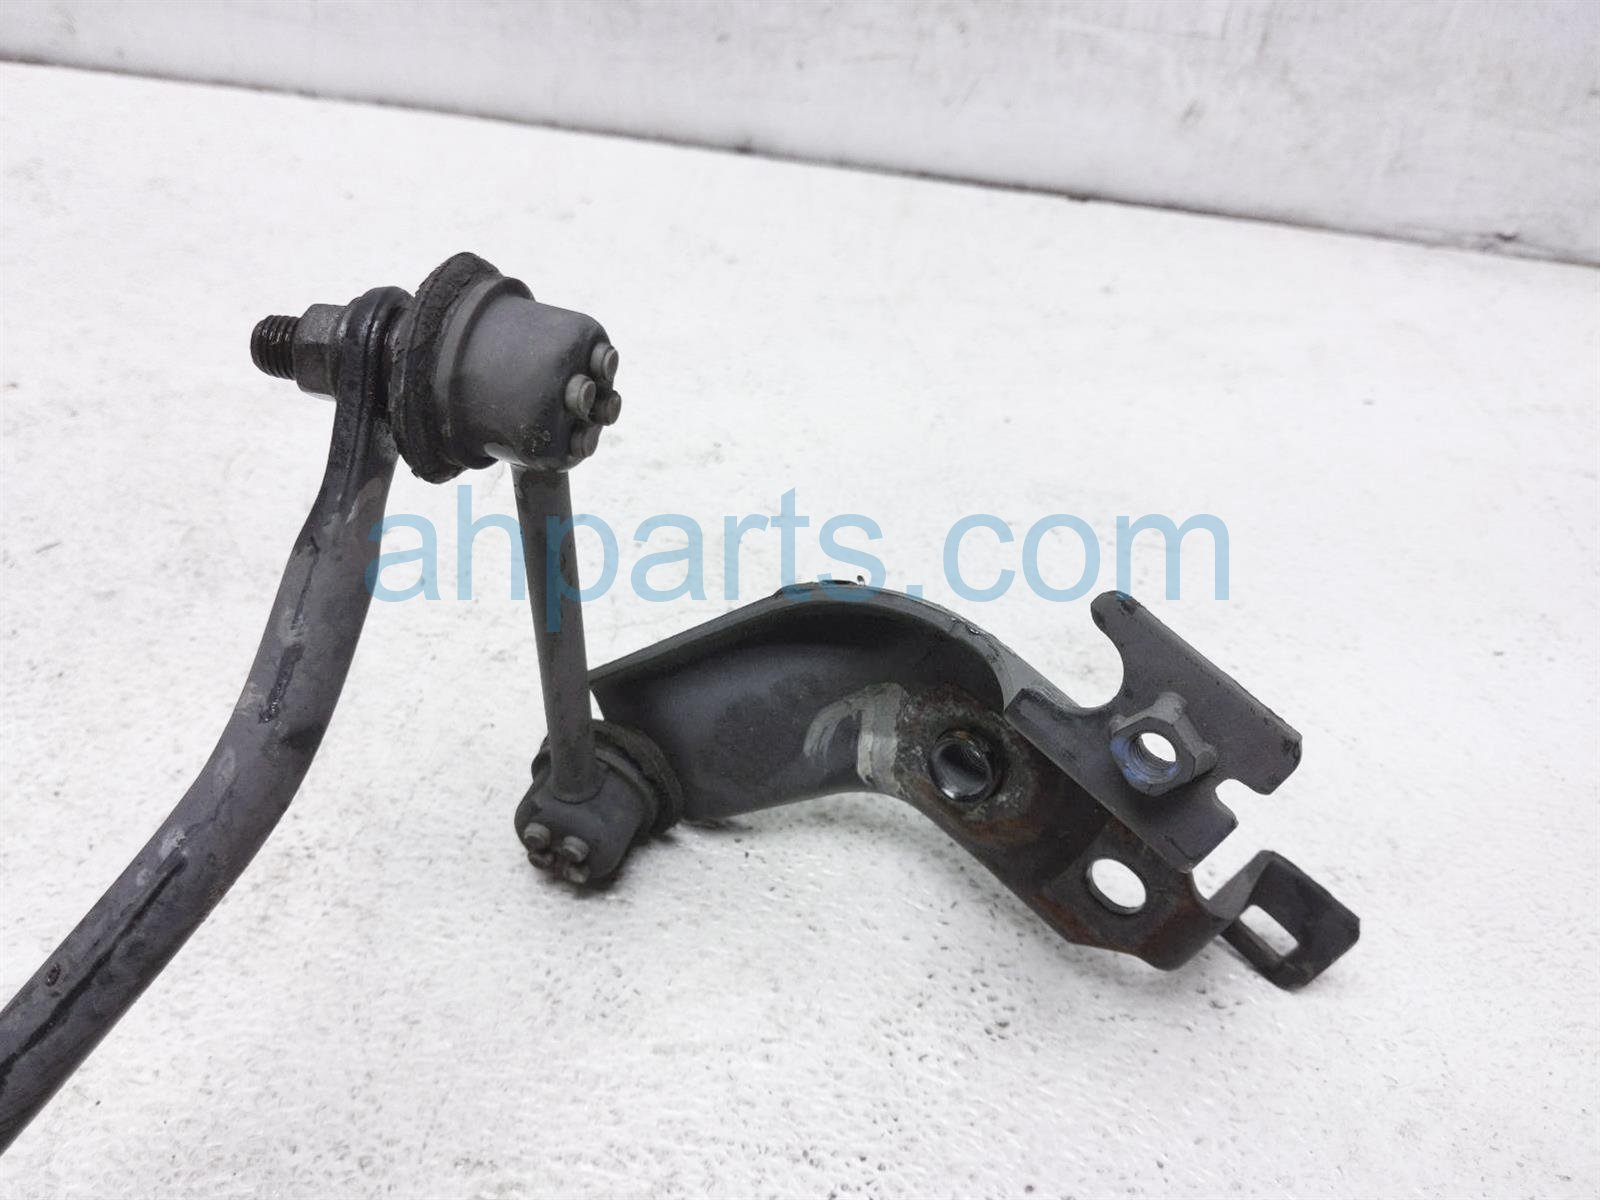 2007 Honda Accord Rear Stabilizer / Sway Bar 52300 SDB A01 Replacement